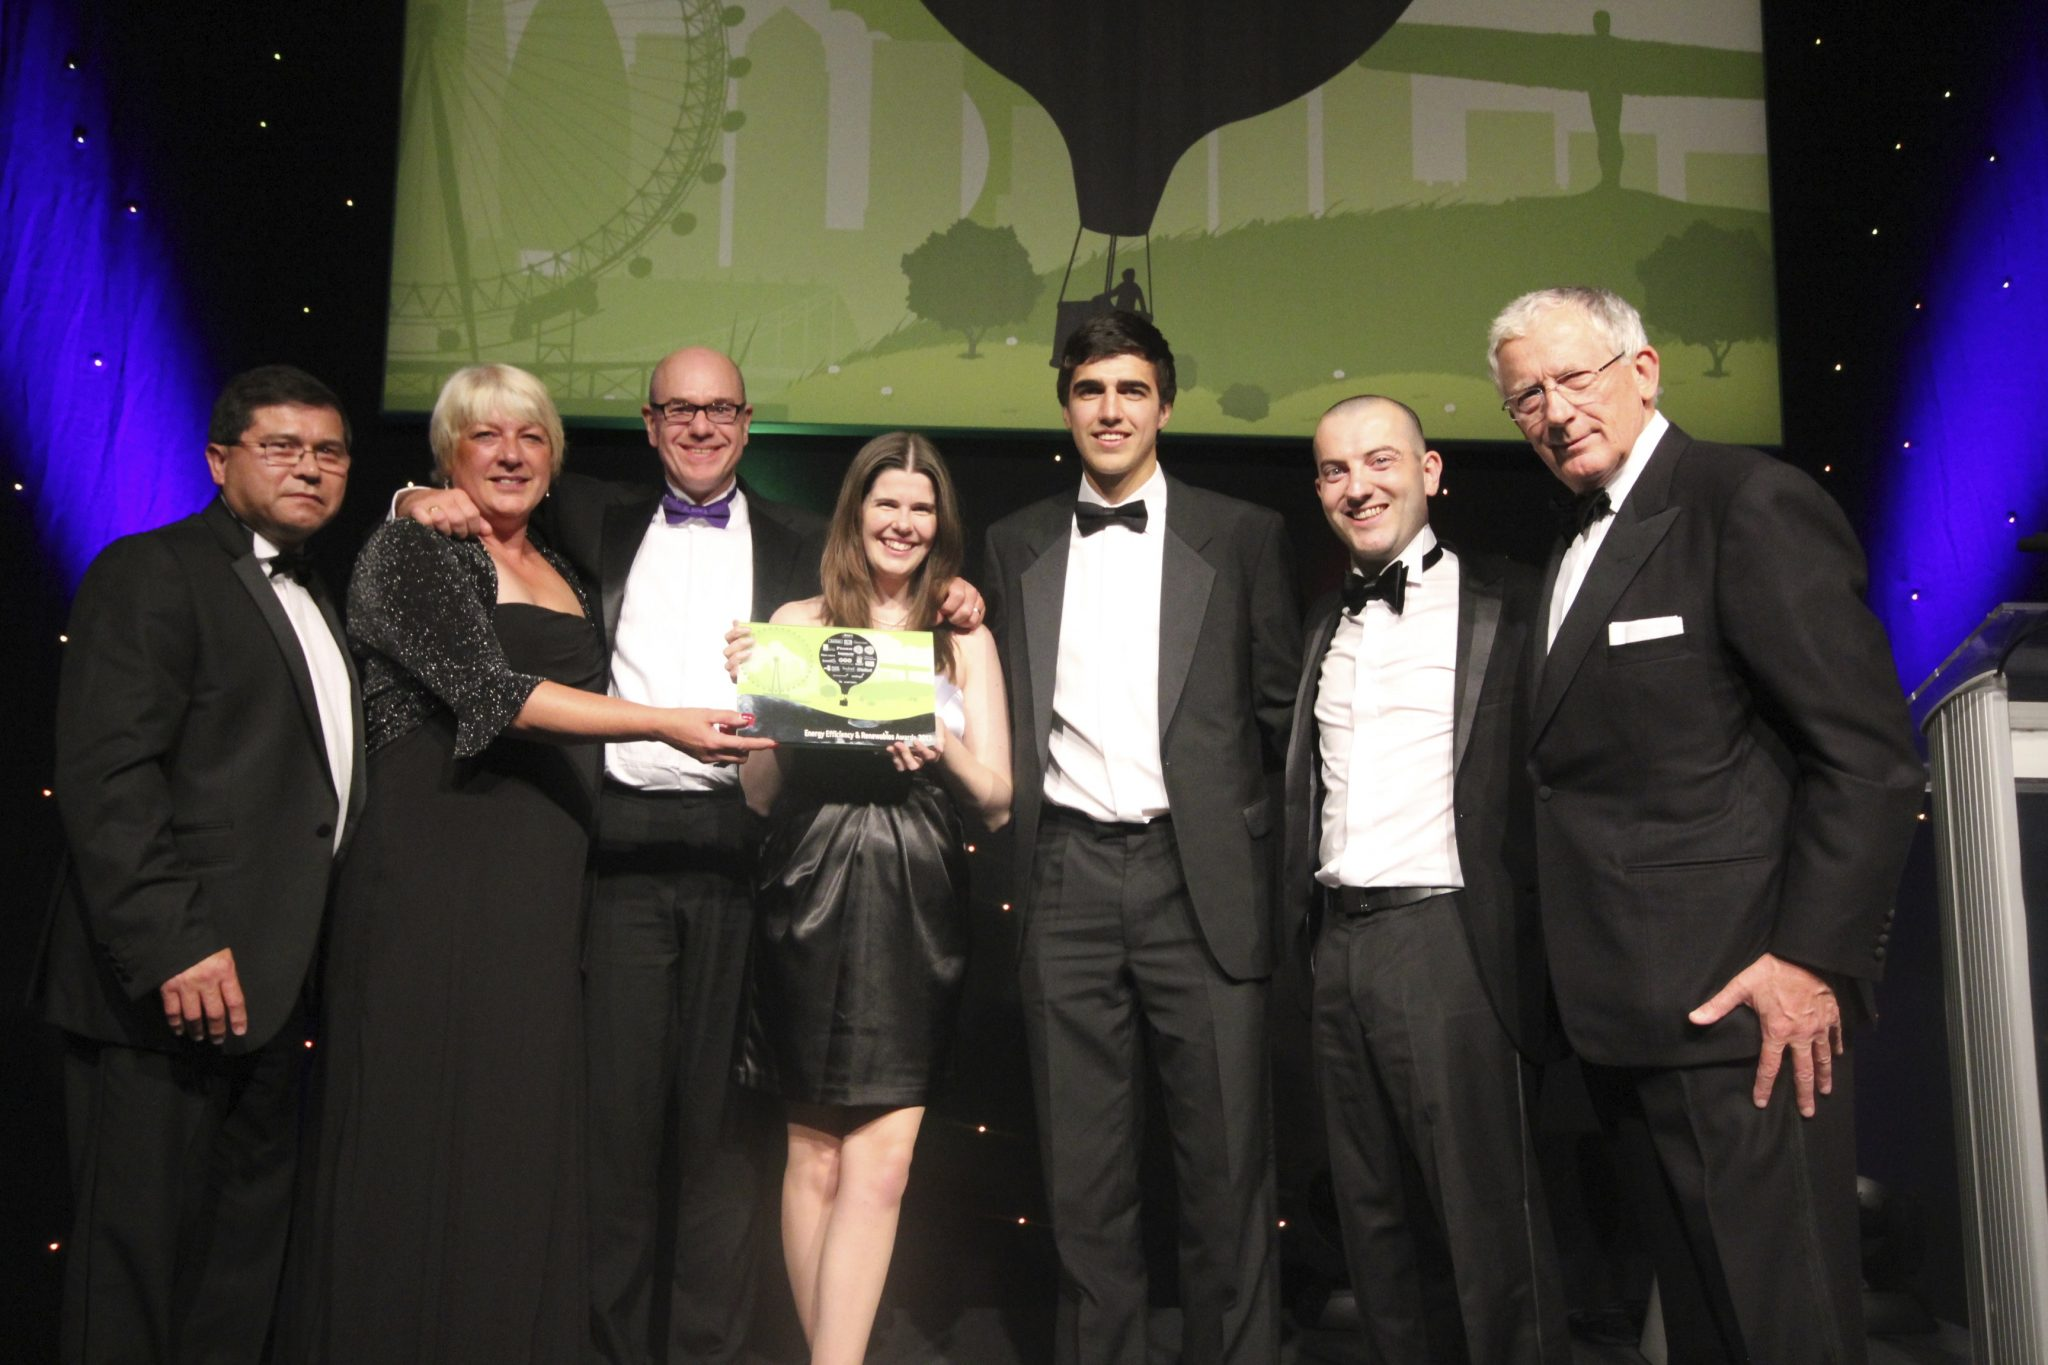 Eco2Solar are the 2013 Solar Installers of the Year